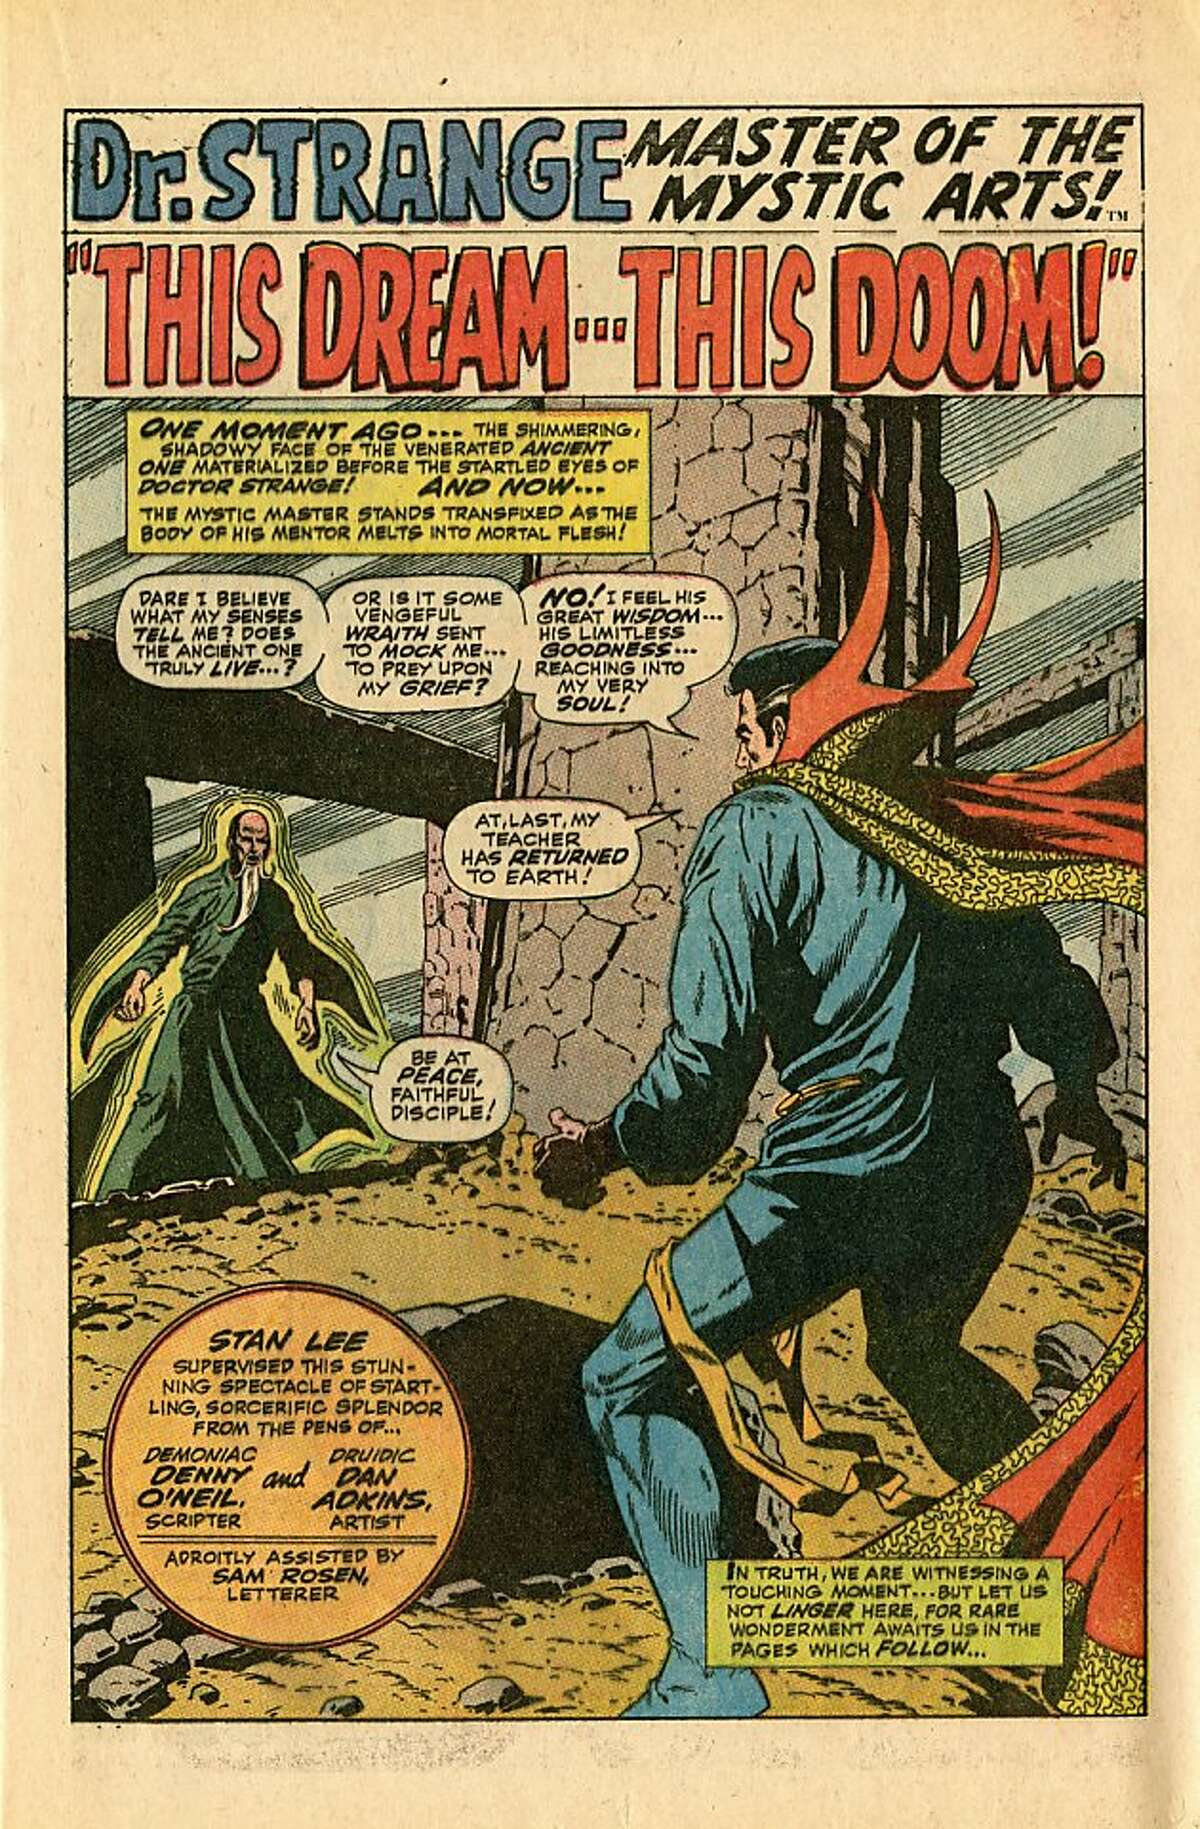 THE GURU -- The Ancient One, mentor of Dr. Stephen Strange, in Strange Tales 167 (1968).